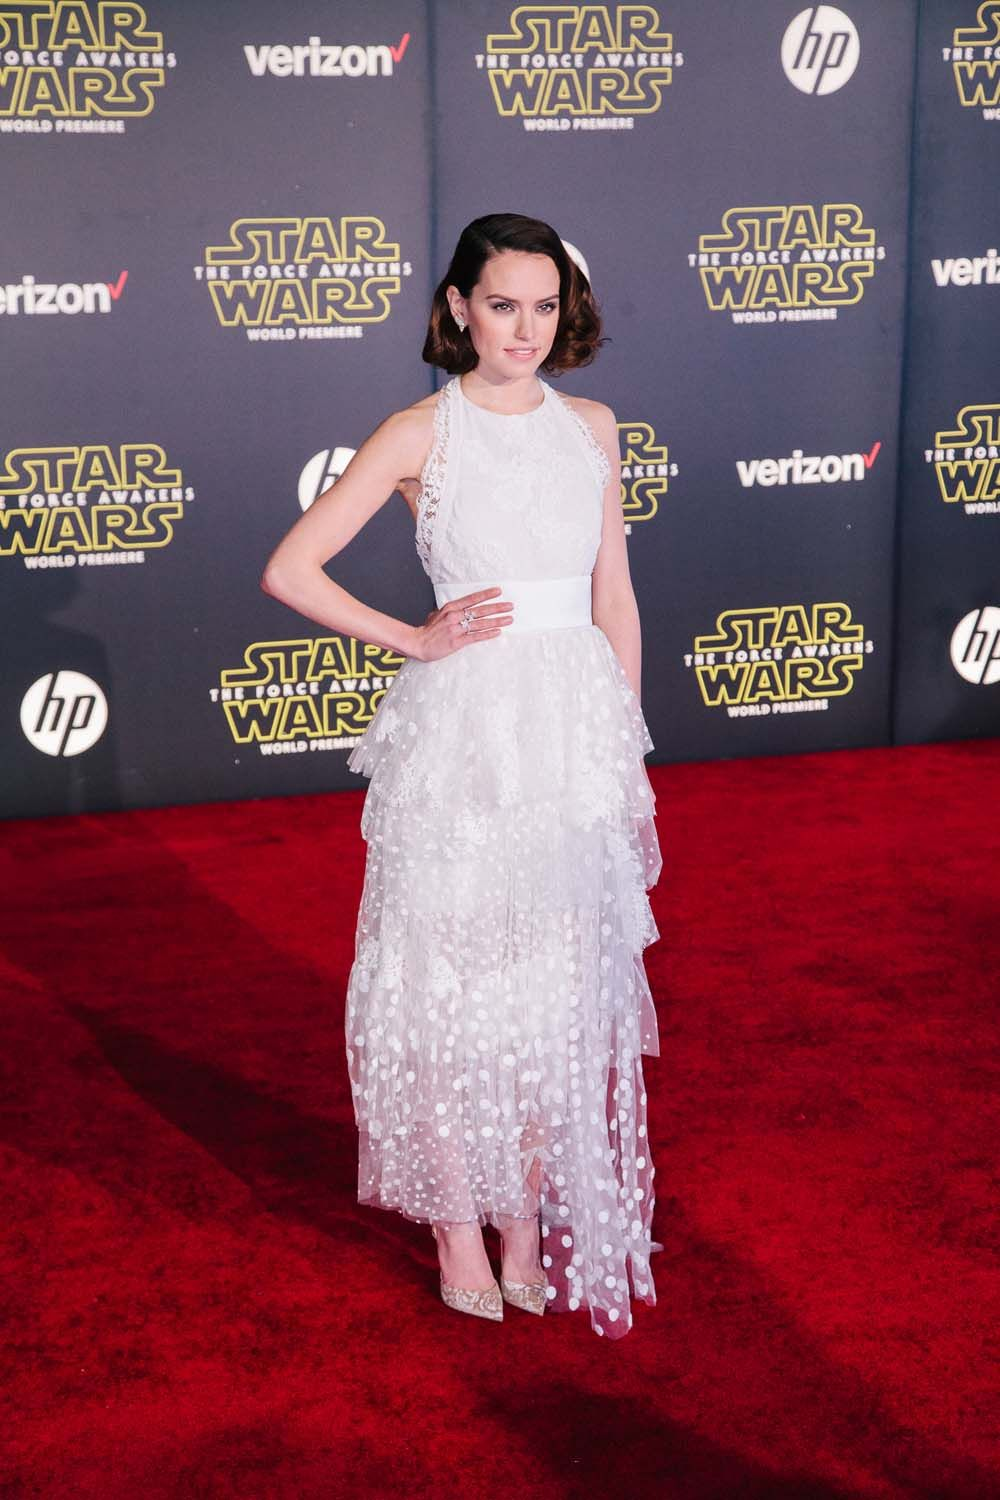 Photo of 9 Stylish Moments from the Star Wars: The Force Awakens Red Carpet